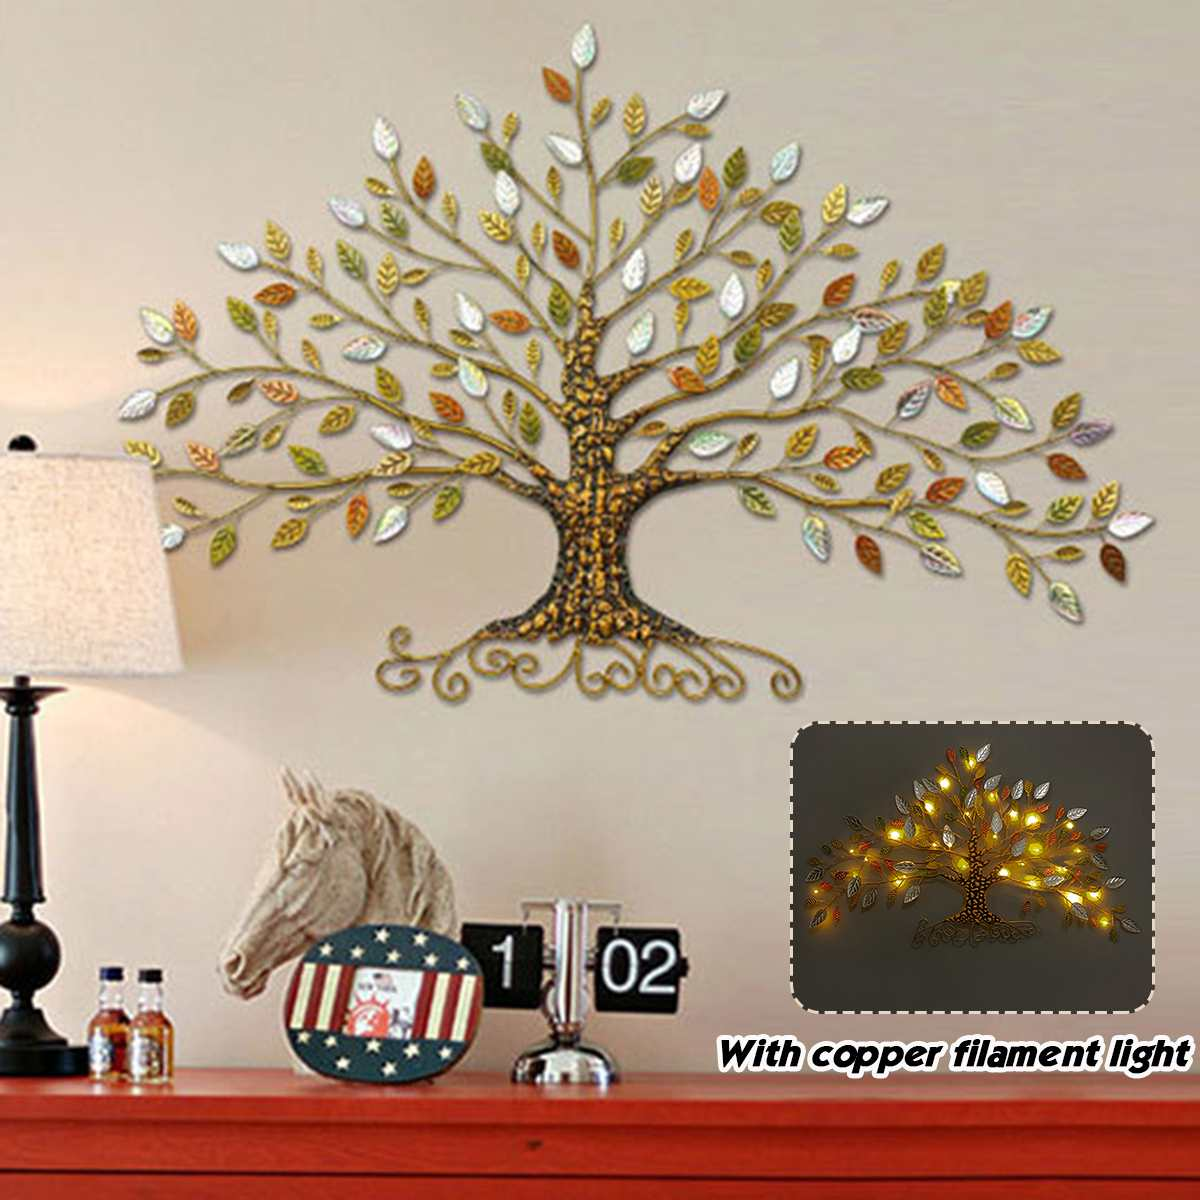 Iron Rich Tree Tree Of Life Wall Decoration Wall Home Decor Living Room Wall Decoration Home Decoration Accessories Wall Art